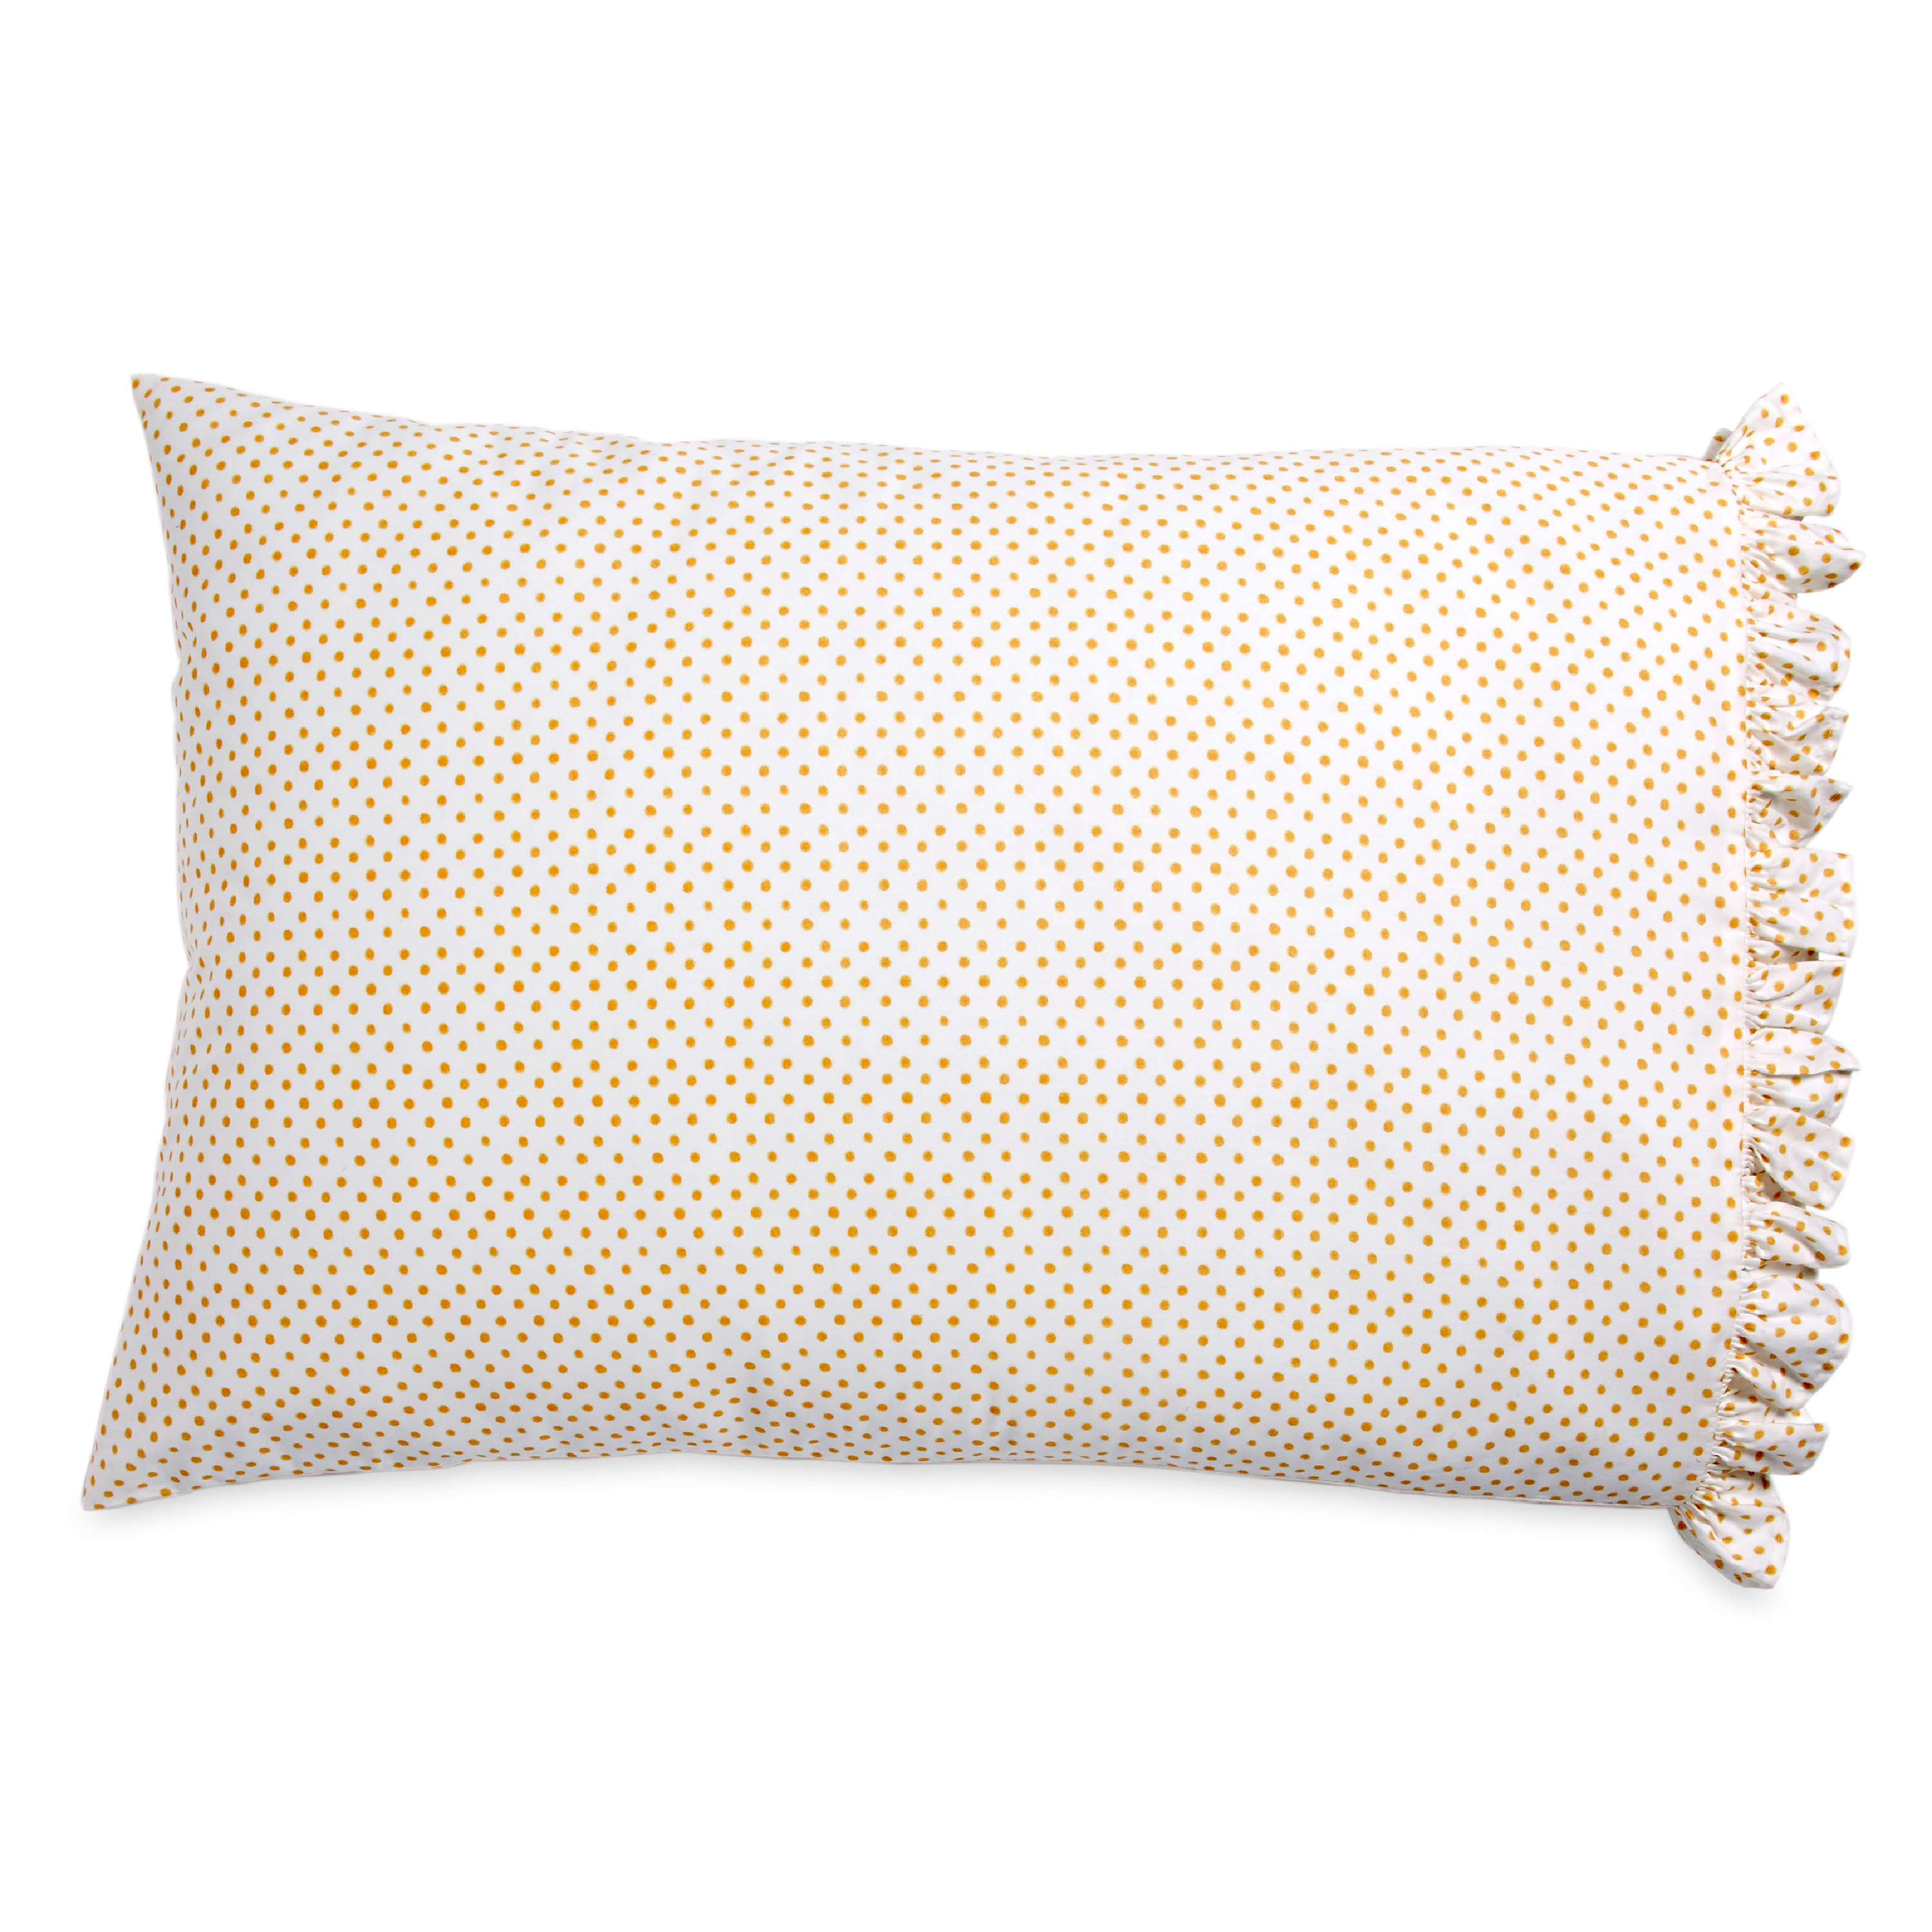 PIONEER WOMAN POLKA DOT RUFFLE PILLOWCASE SET